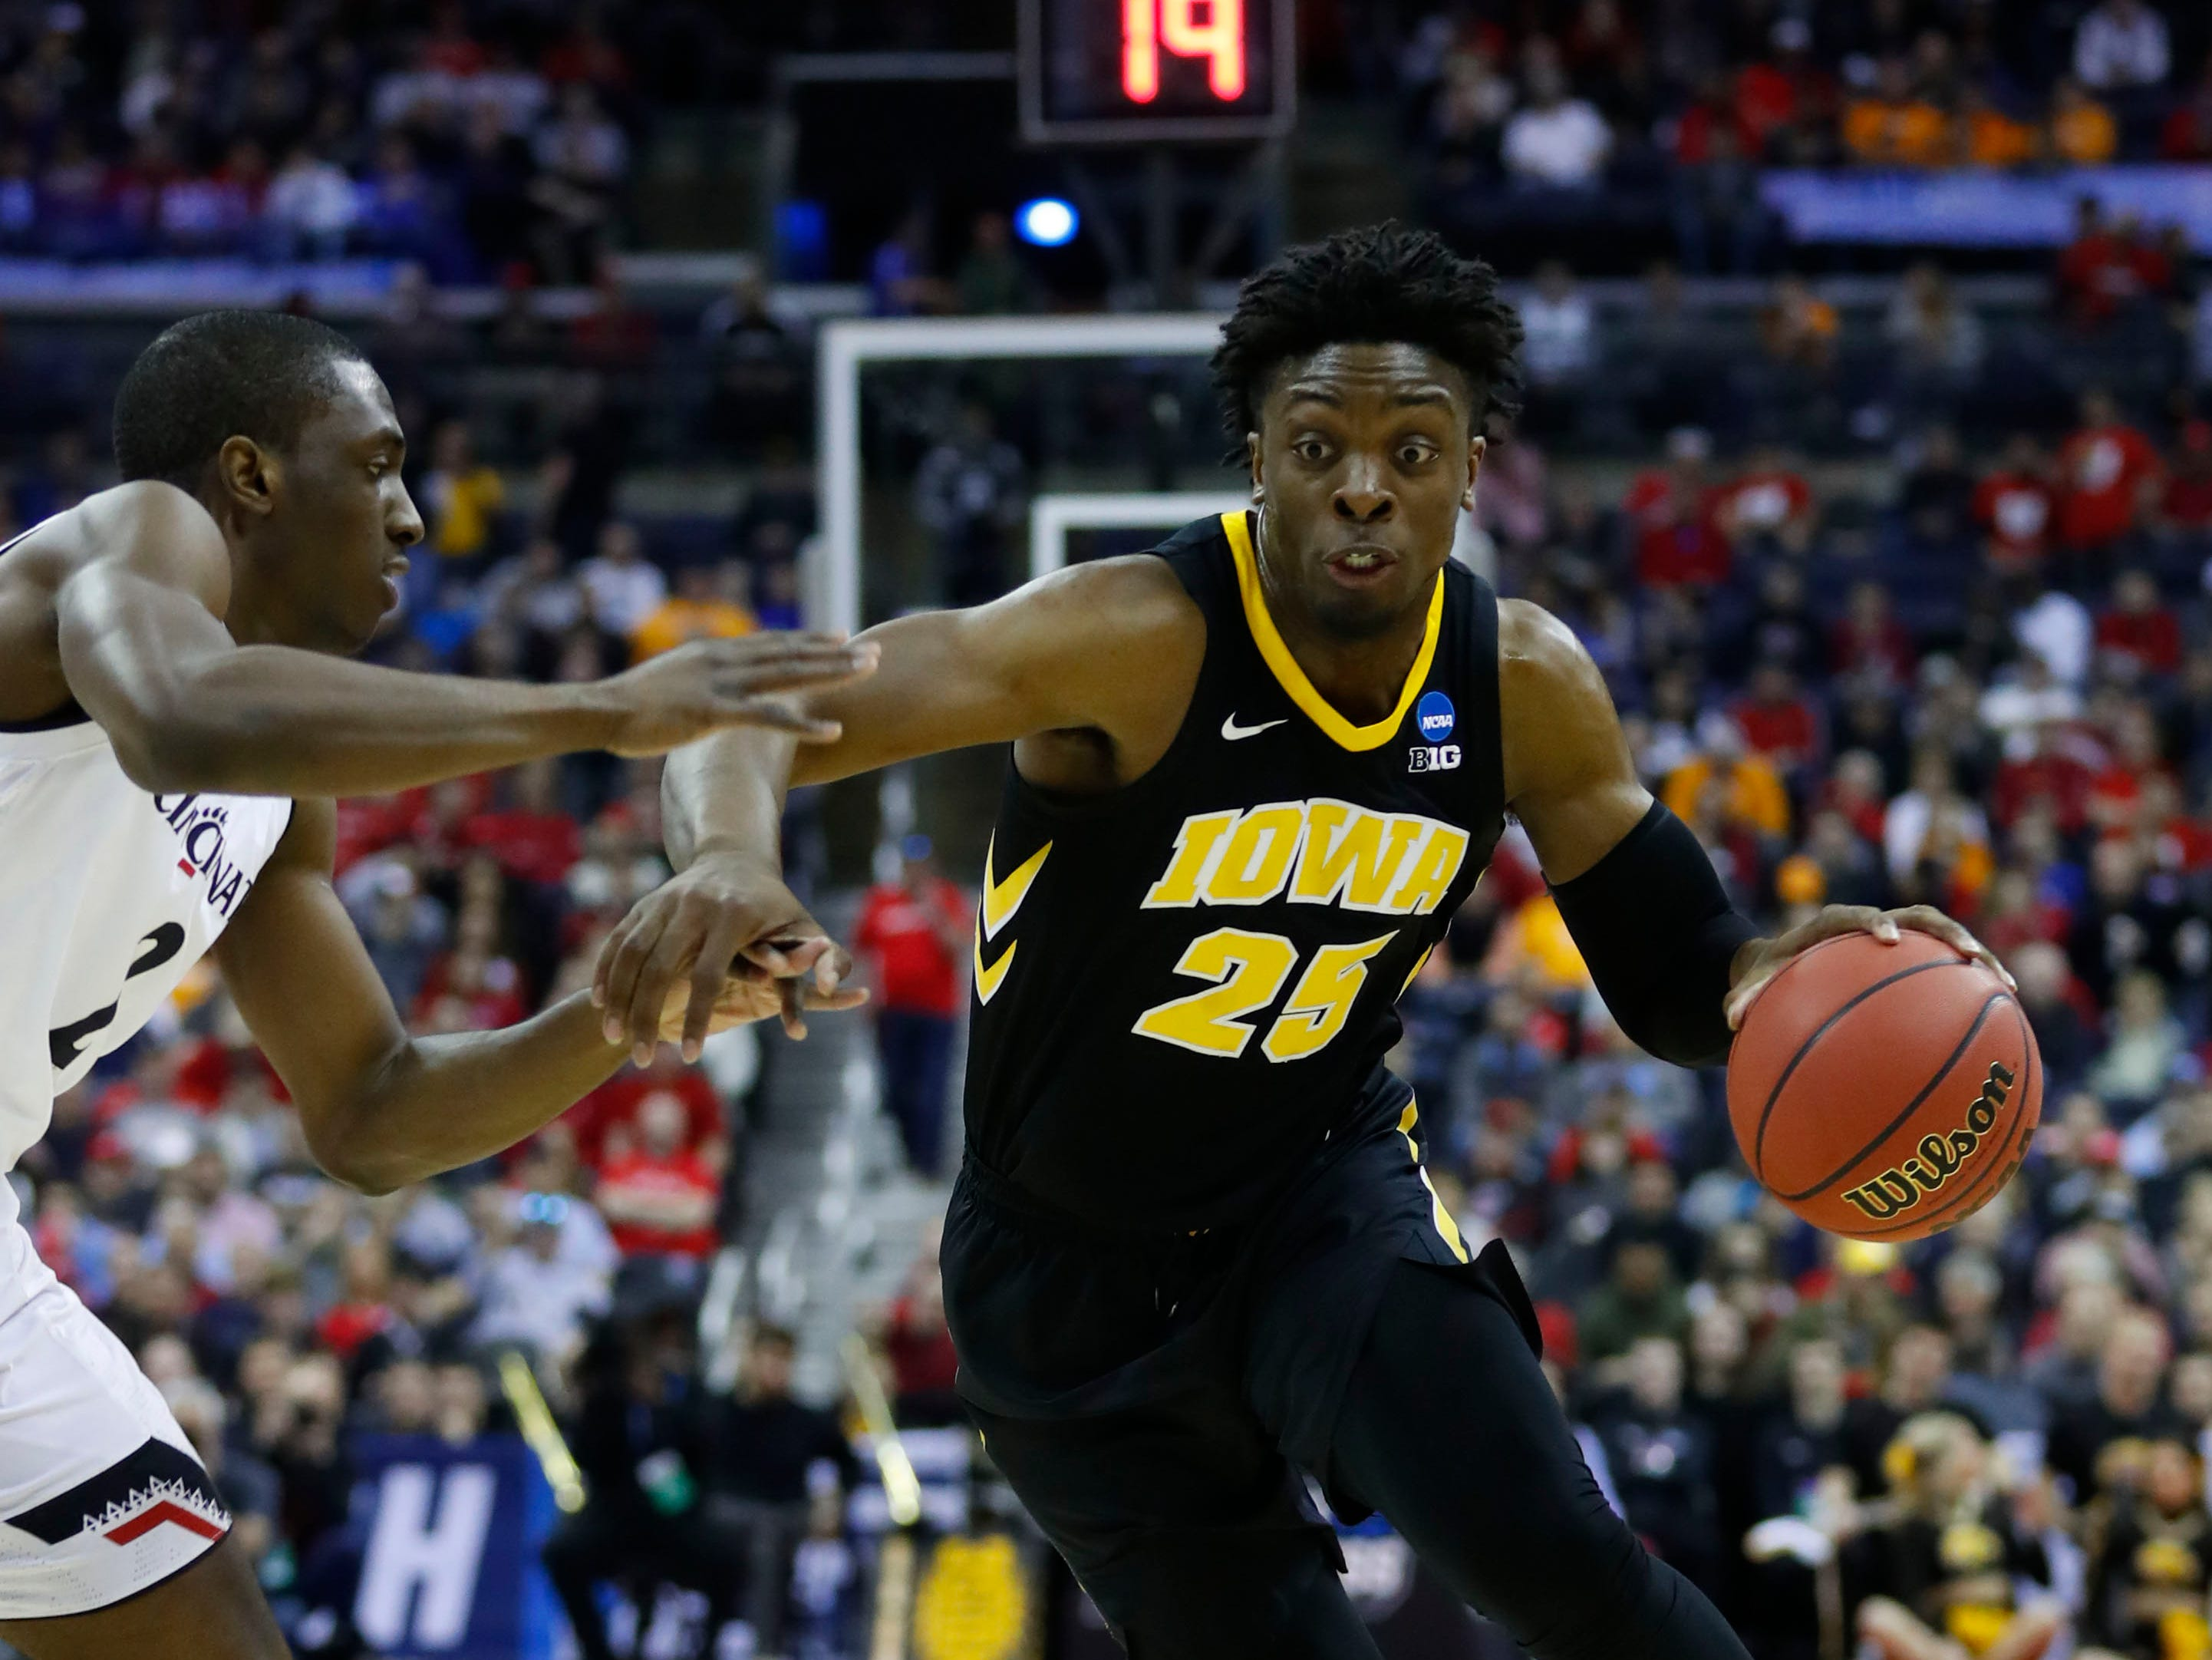 Mar 22, 2019; Columbus, OH, USA; Iowa Hawkeyes forward Tyler Cook (25) drives down court defended by Cincinnati Bearcats guard Keith Williams (2) in the first half in the first round of the 2019 NCAA Tournament at Nationwide Arena. Mandatory Credit: Rick Osentoski-USA TODAY Sports